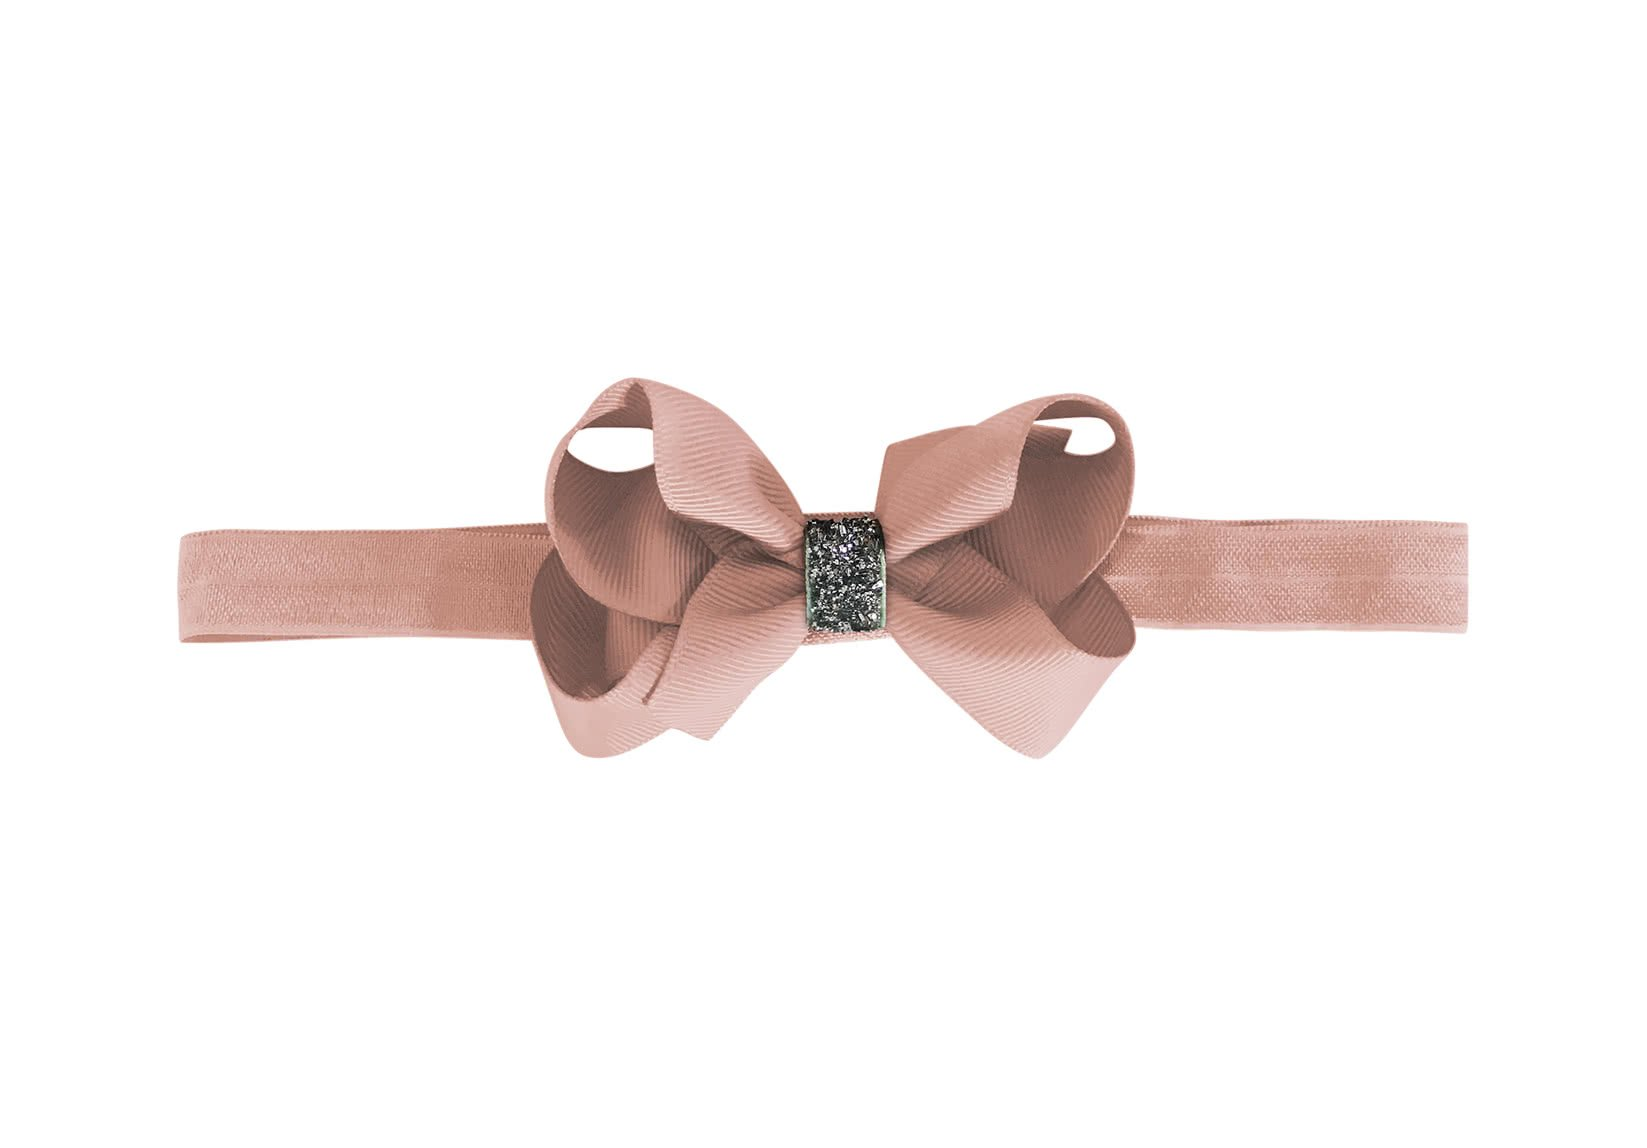 Medium Boutique Bow – Elastic Hairband – Glitter Collection